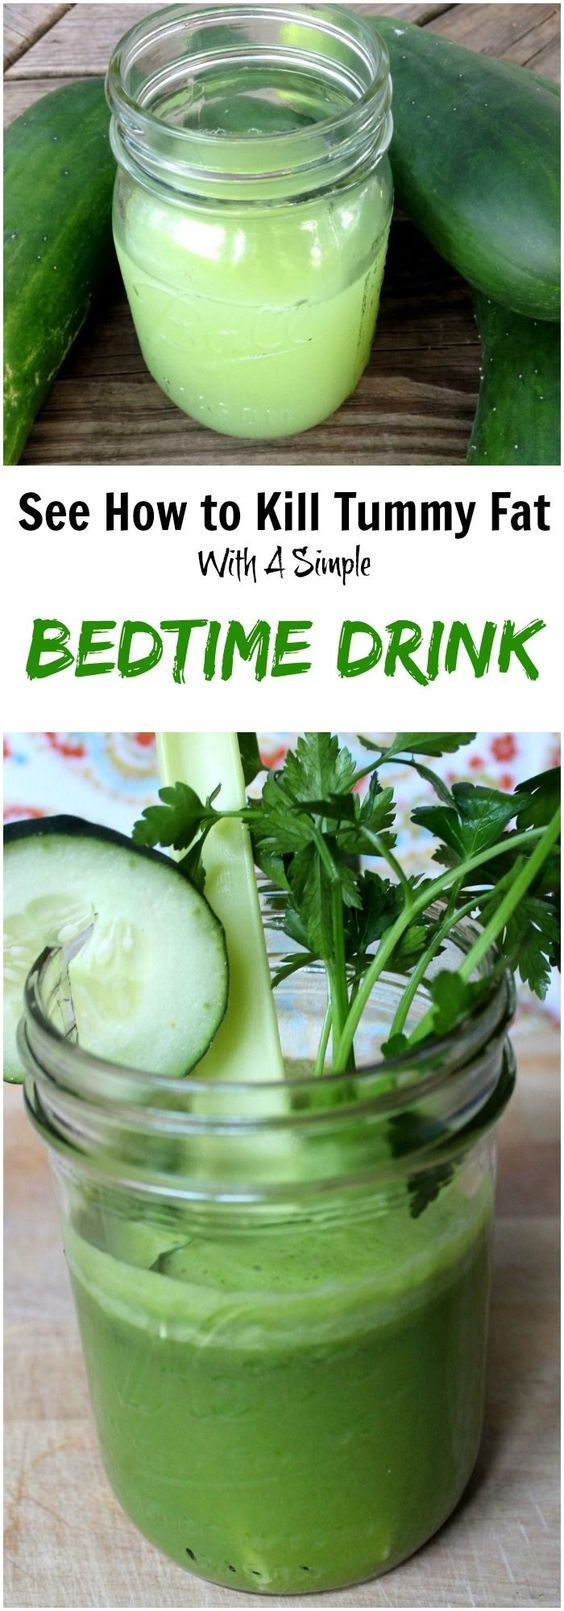 See How to Kill Tummy Fat With A Simple Bedtime Drink